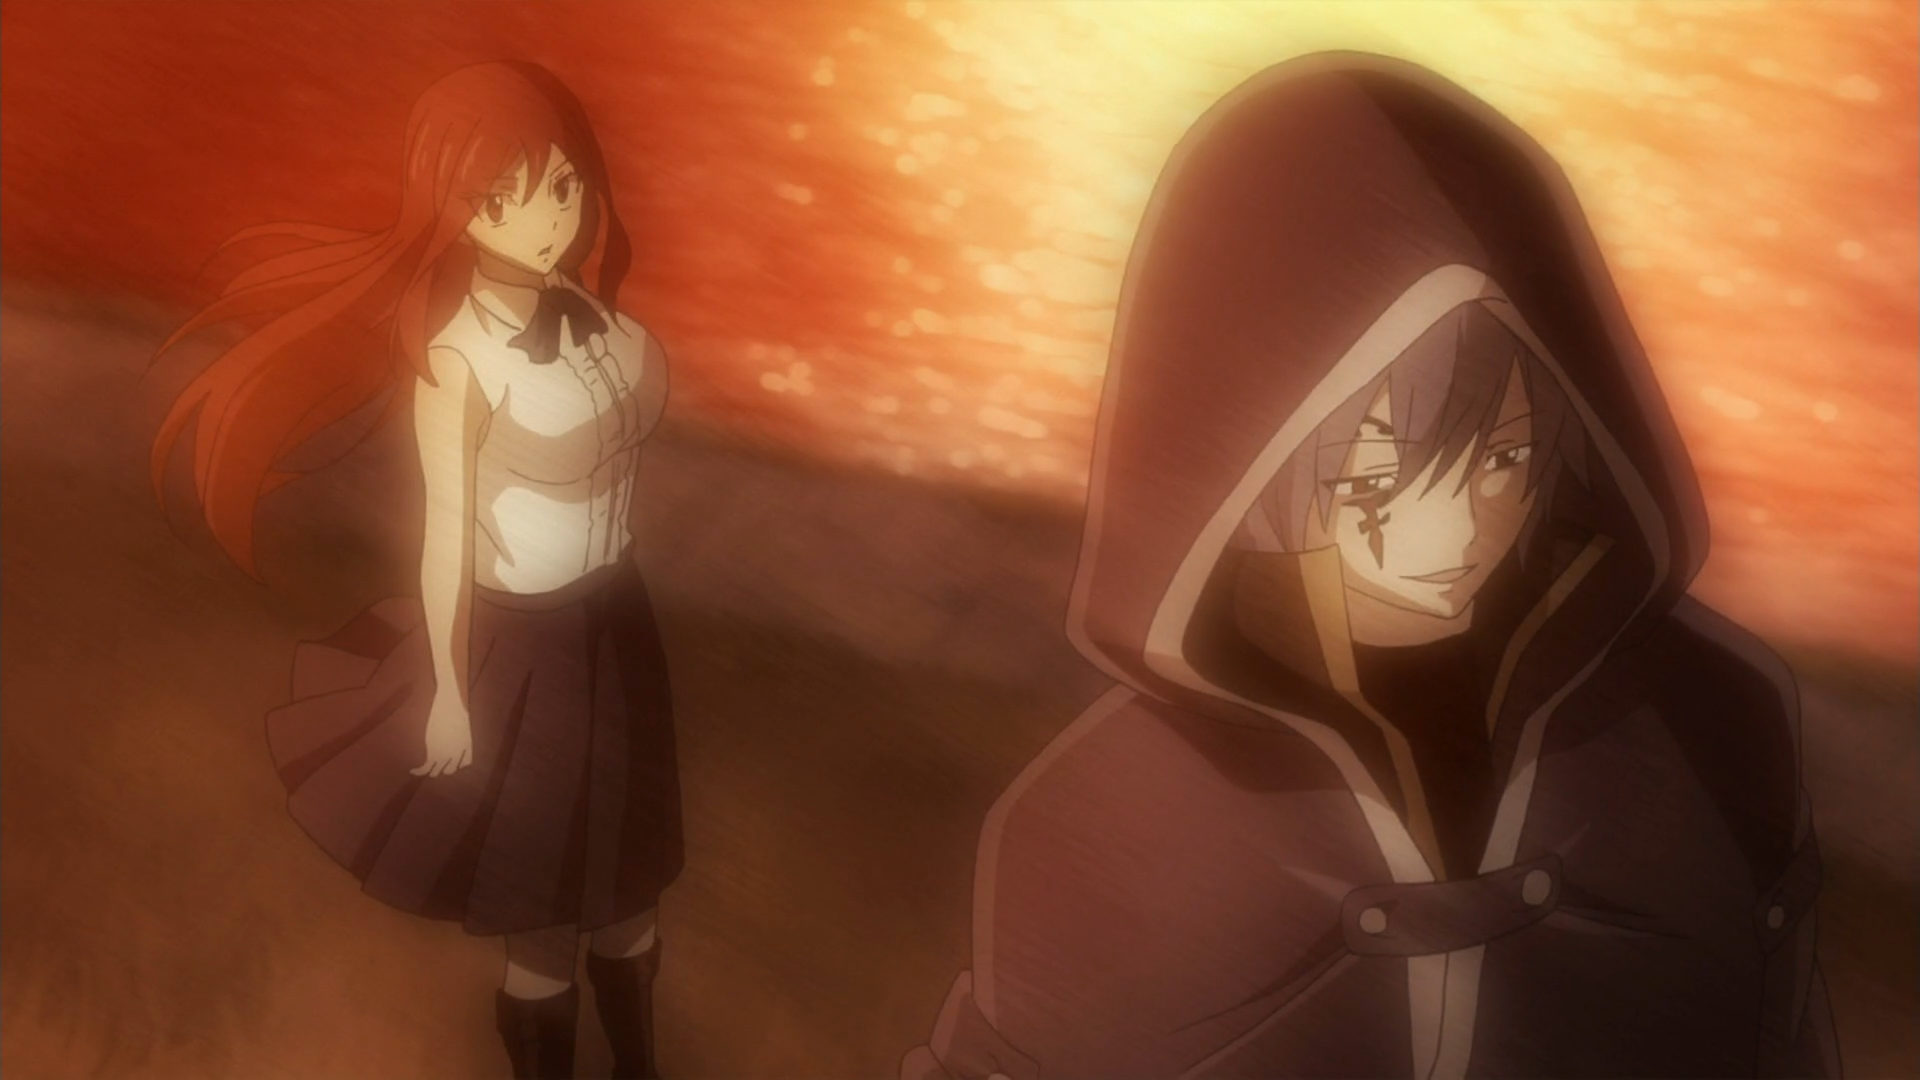 [HorribleSubs] Fairy Tail S2 - 90 [1080p]_001_24906